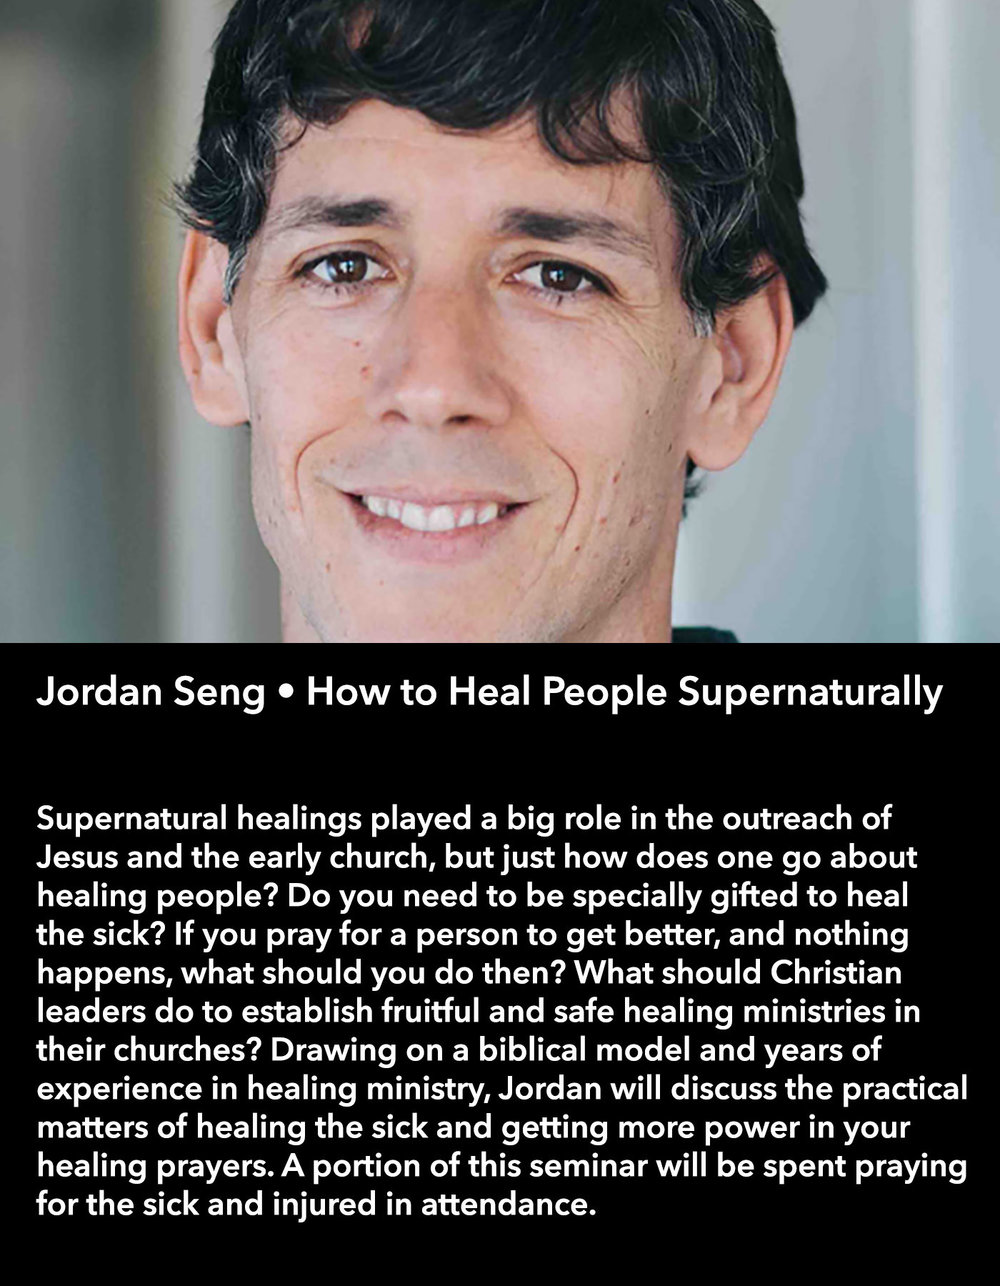 Jordan Seng • How to Heal People Supernaturally • Friday Morning, March 17 • 10:30 – 11:45 am